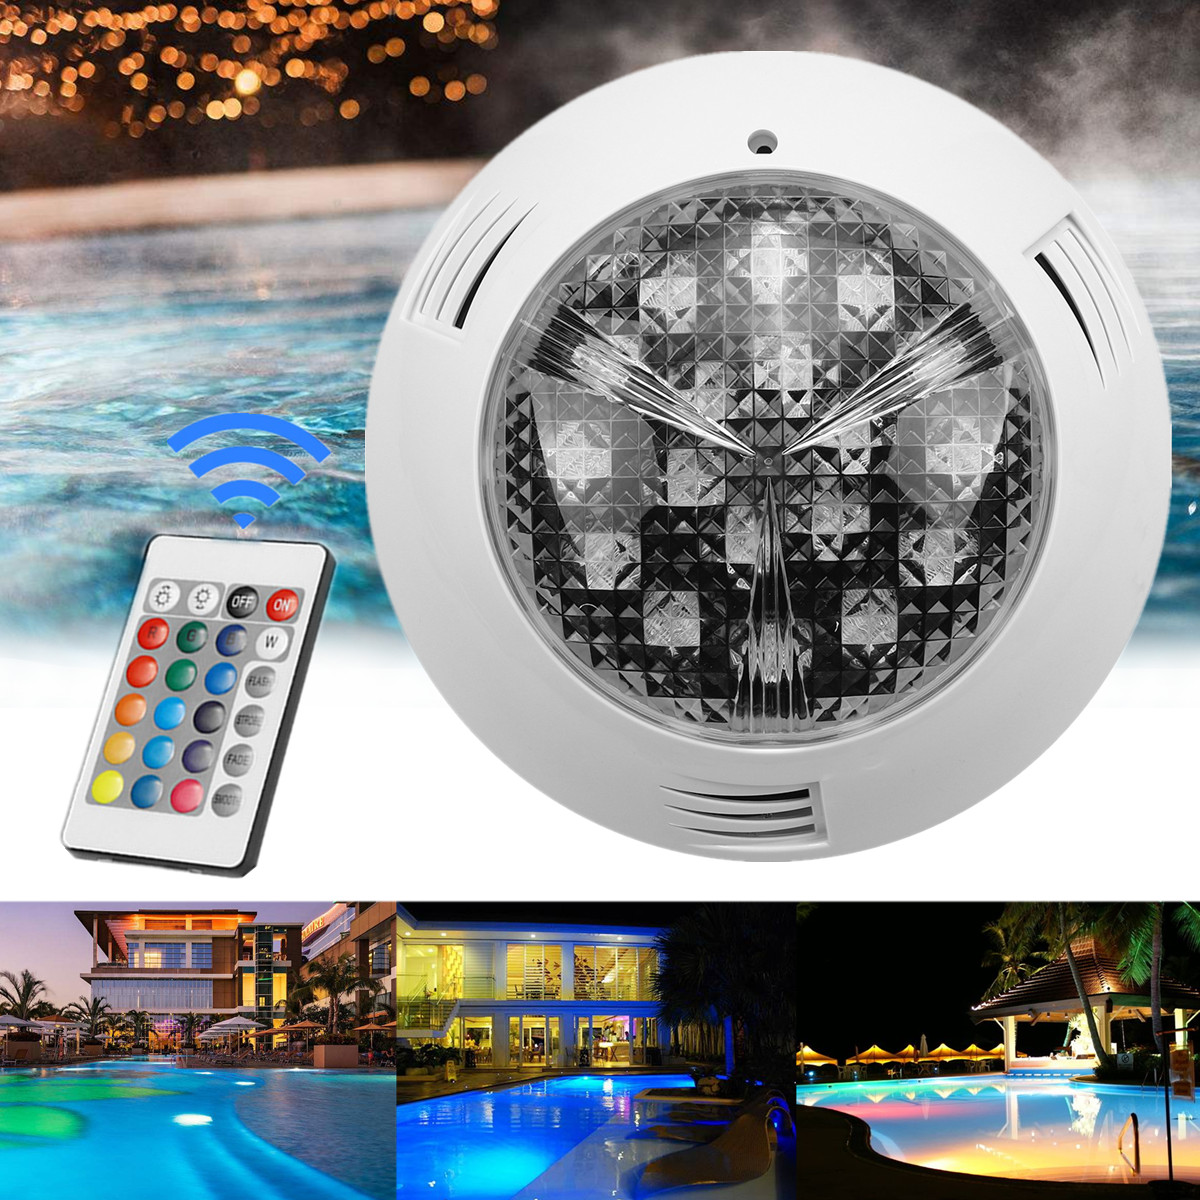 18W 24V LED RGB Colorful Swimming Pool Spa Light Underwater Lamp 50000 Working Hours Remote Control Mounted Design Brightness